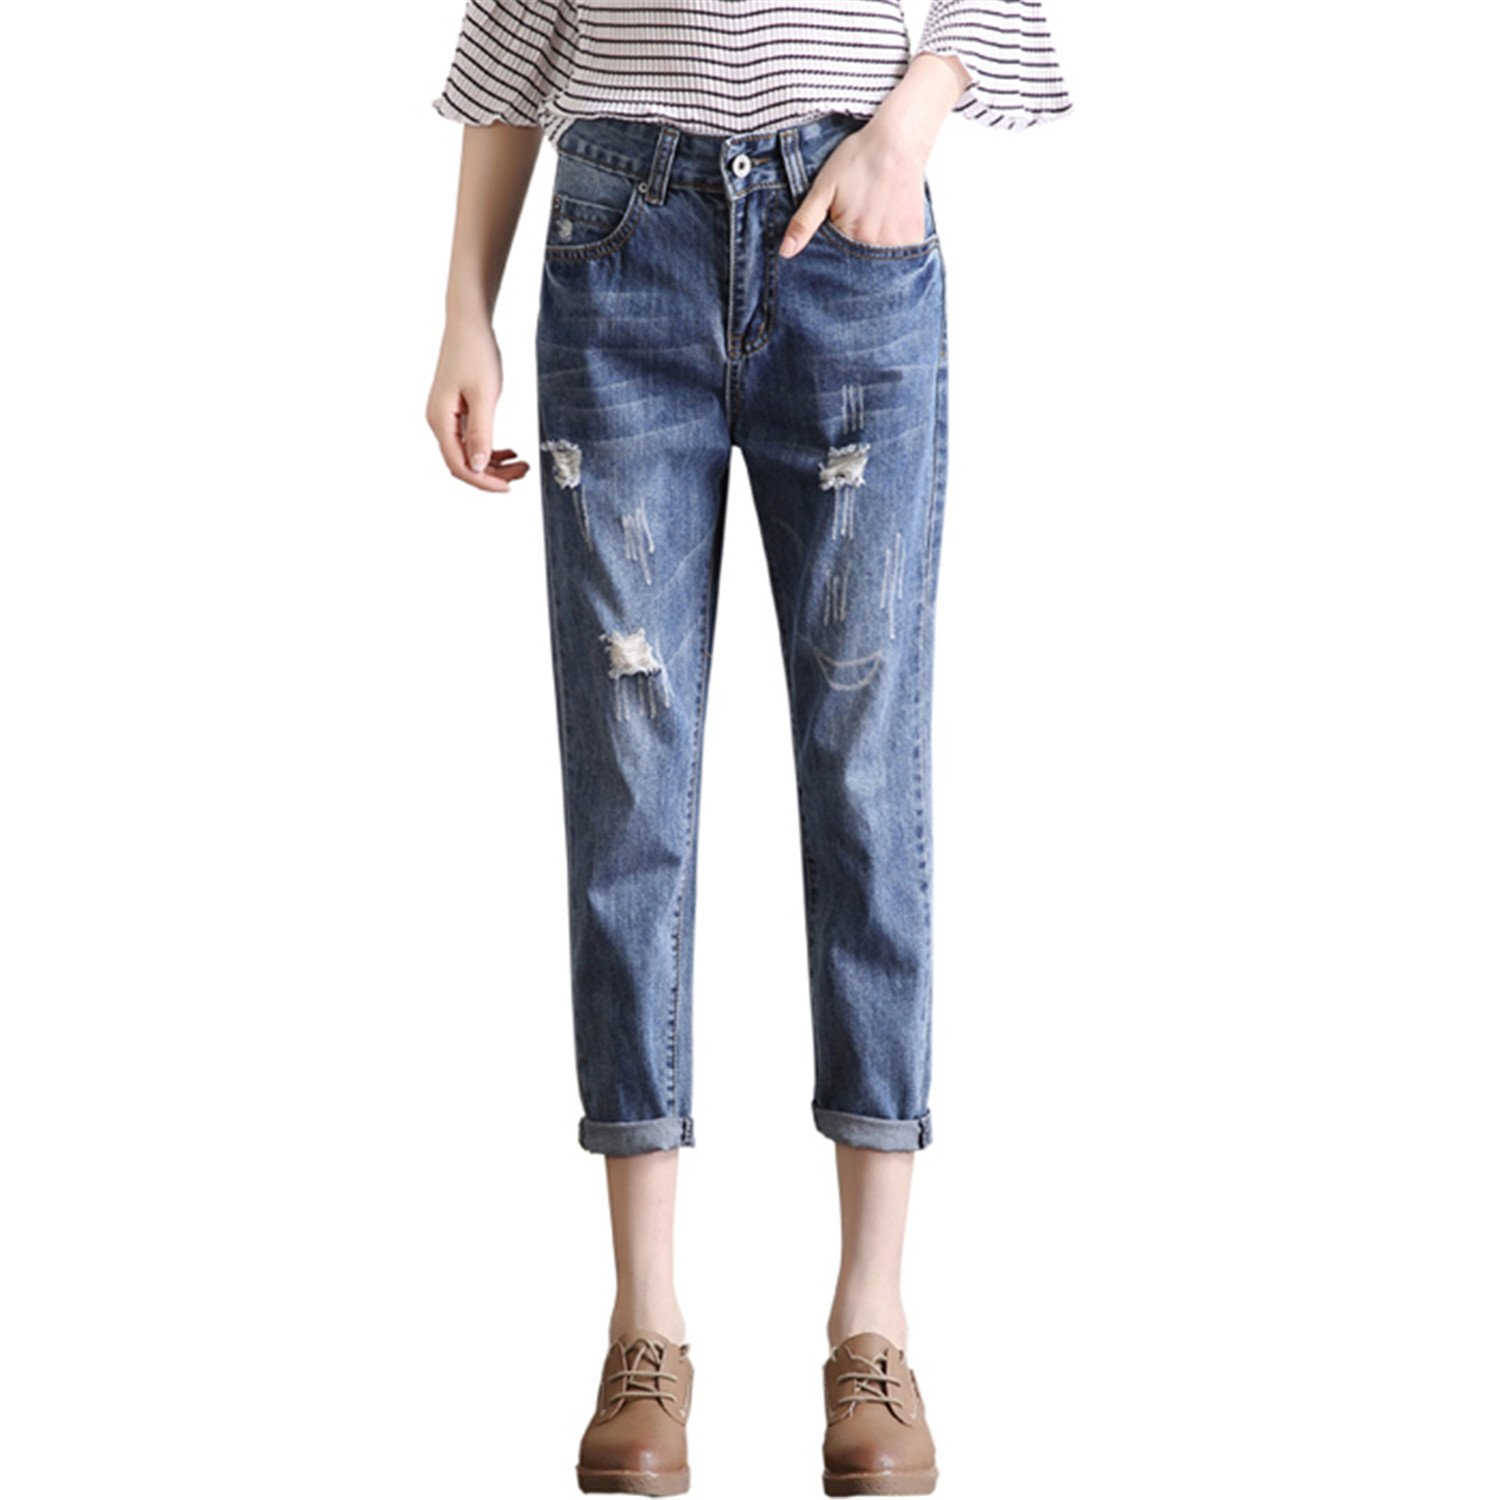 17c6899c87cf Zcaosma woman slim loose pants ripped denim vintage straight jean casual  trouser at amazon womens jeans